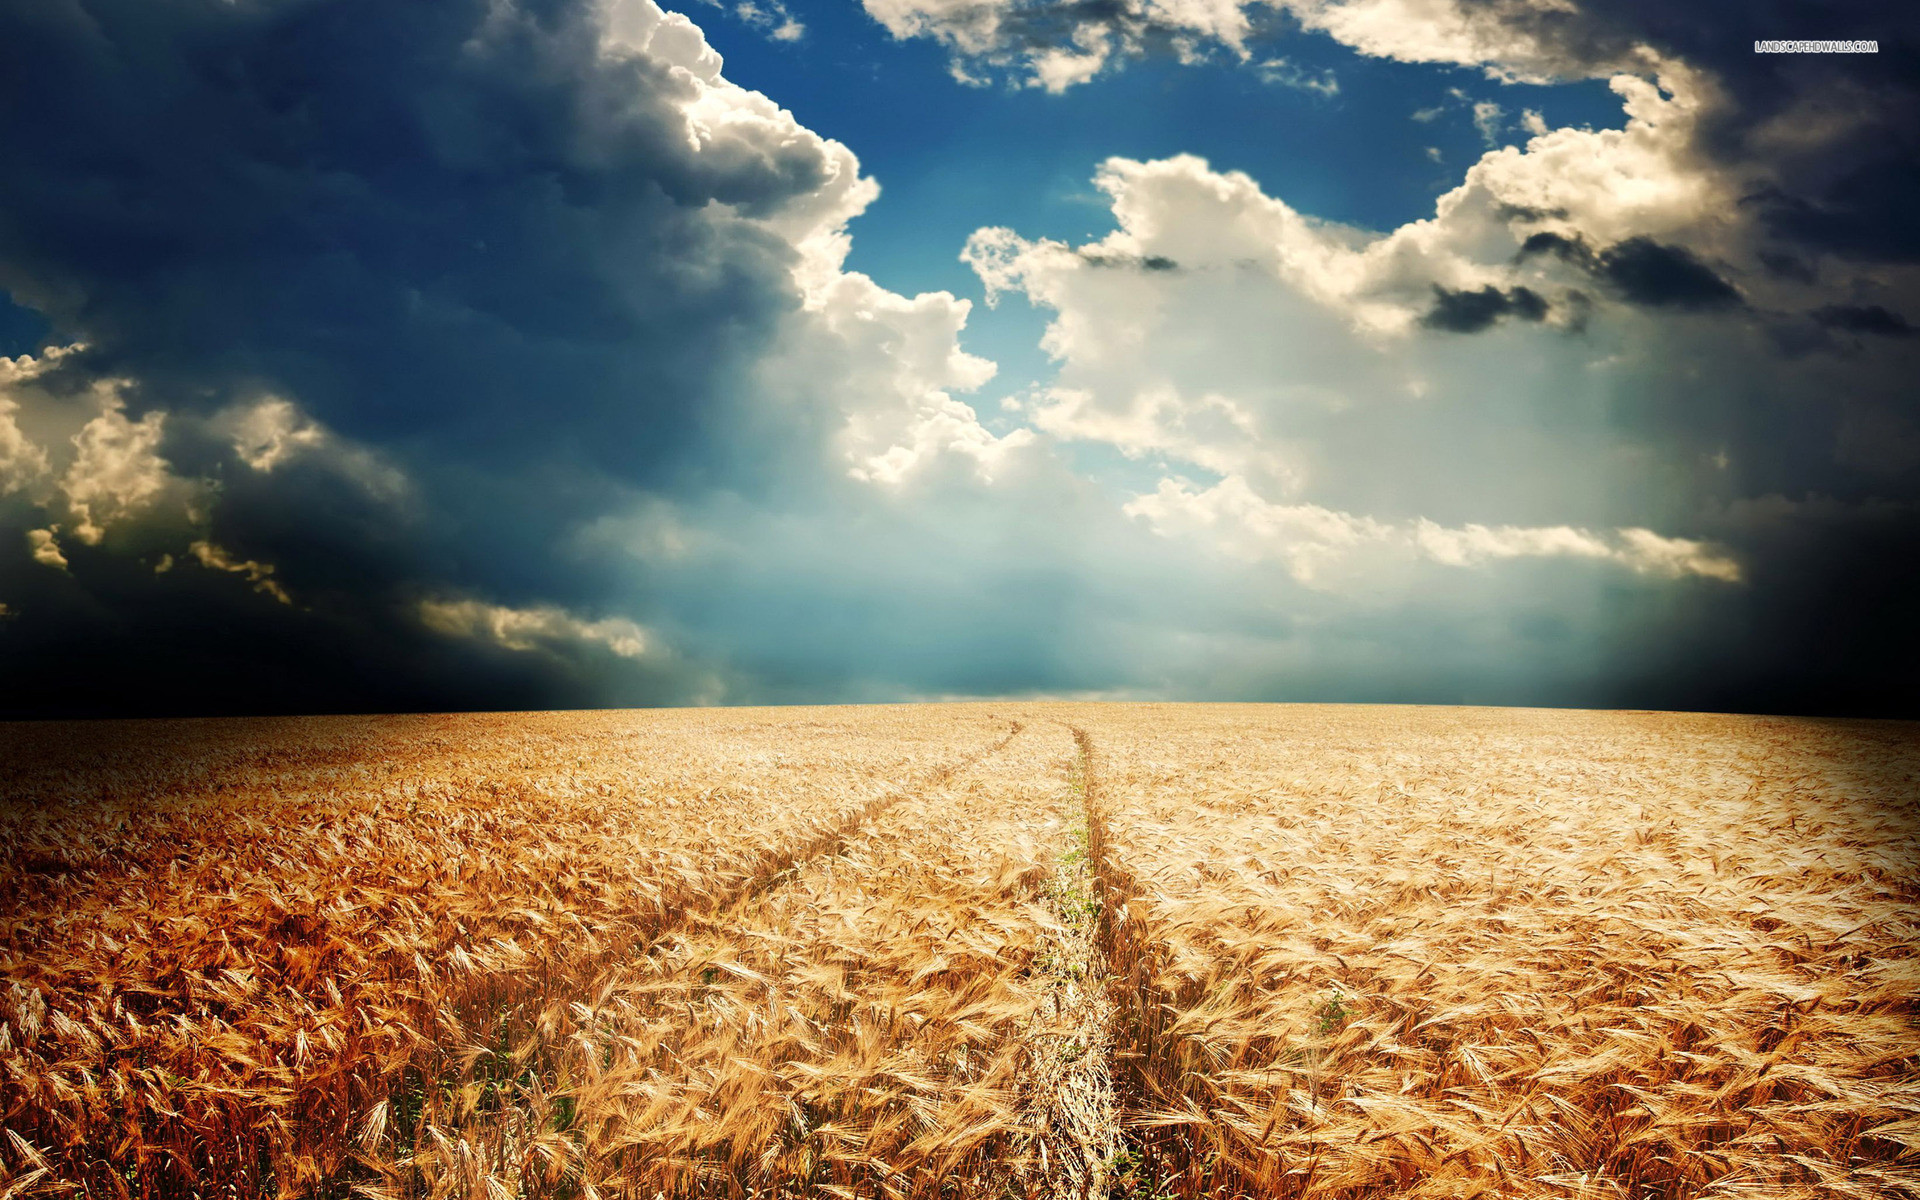 Pretty Wheat Field Cloudy Sky wallpapers and stock photos